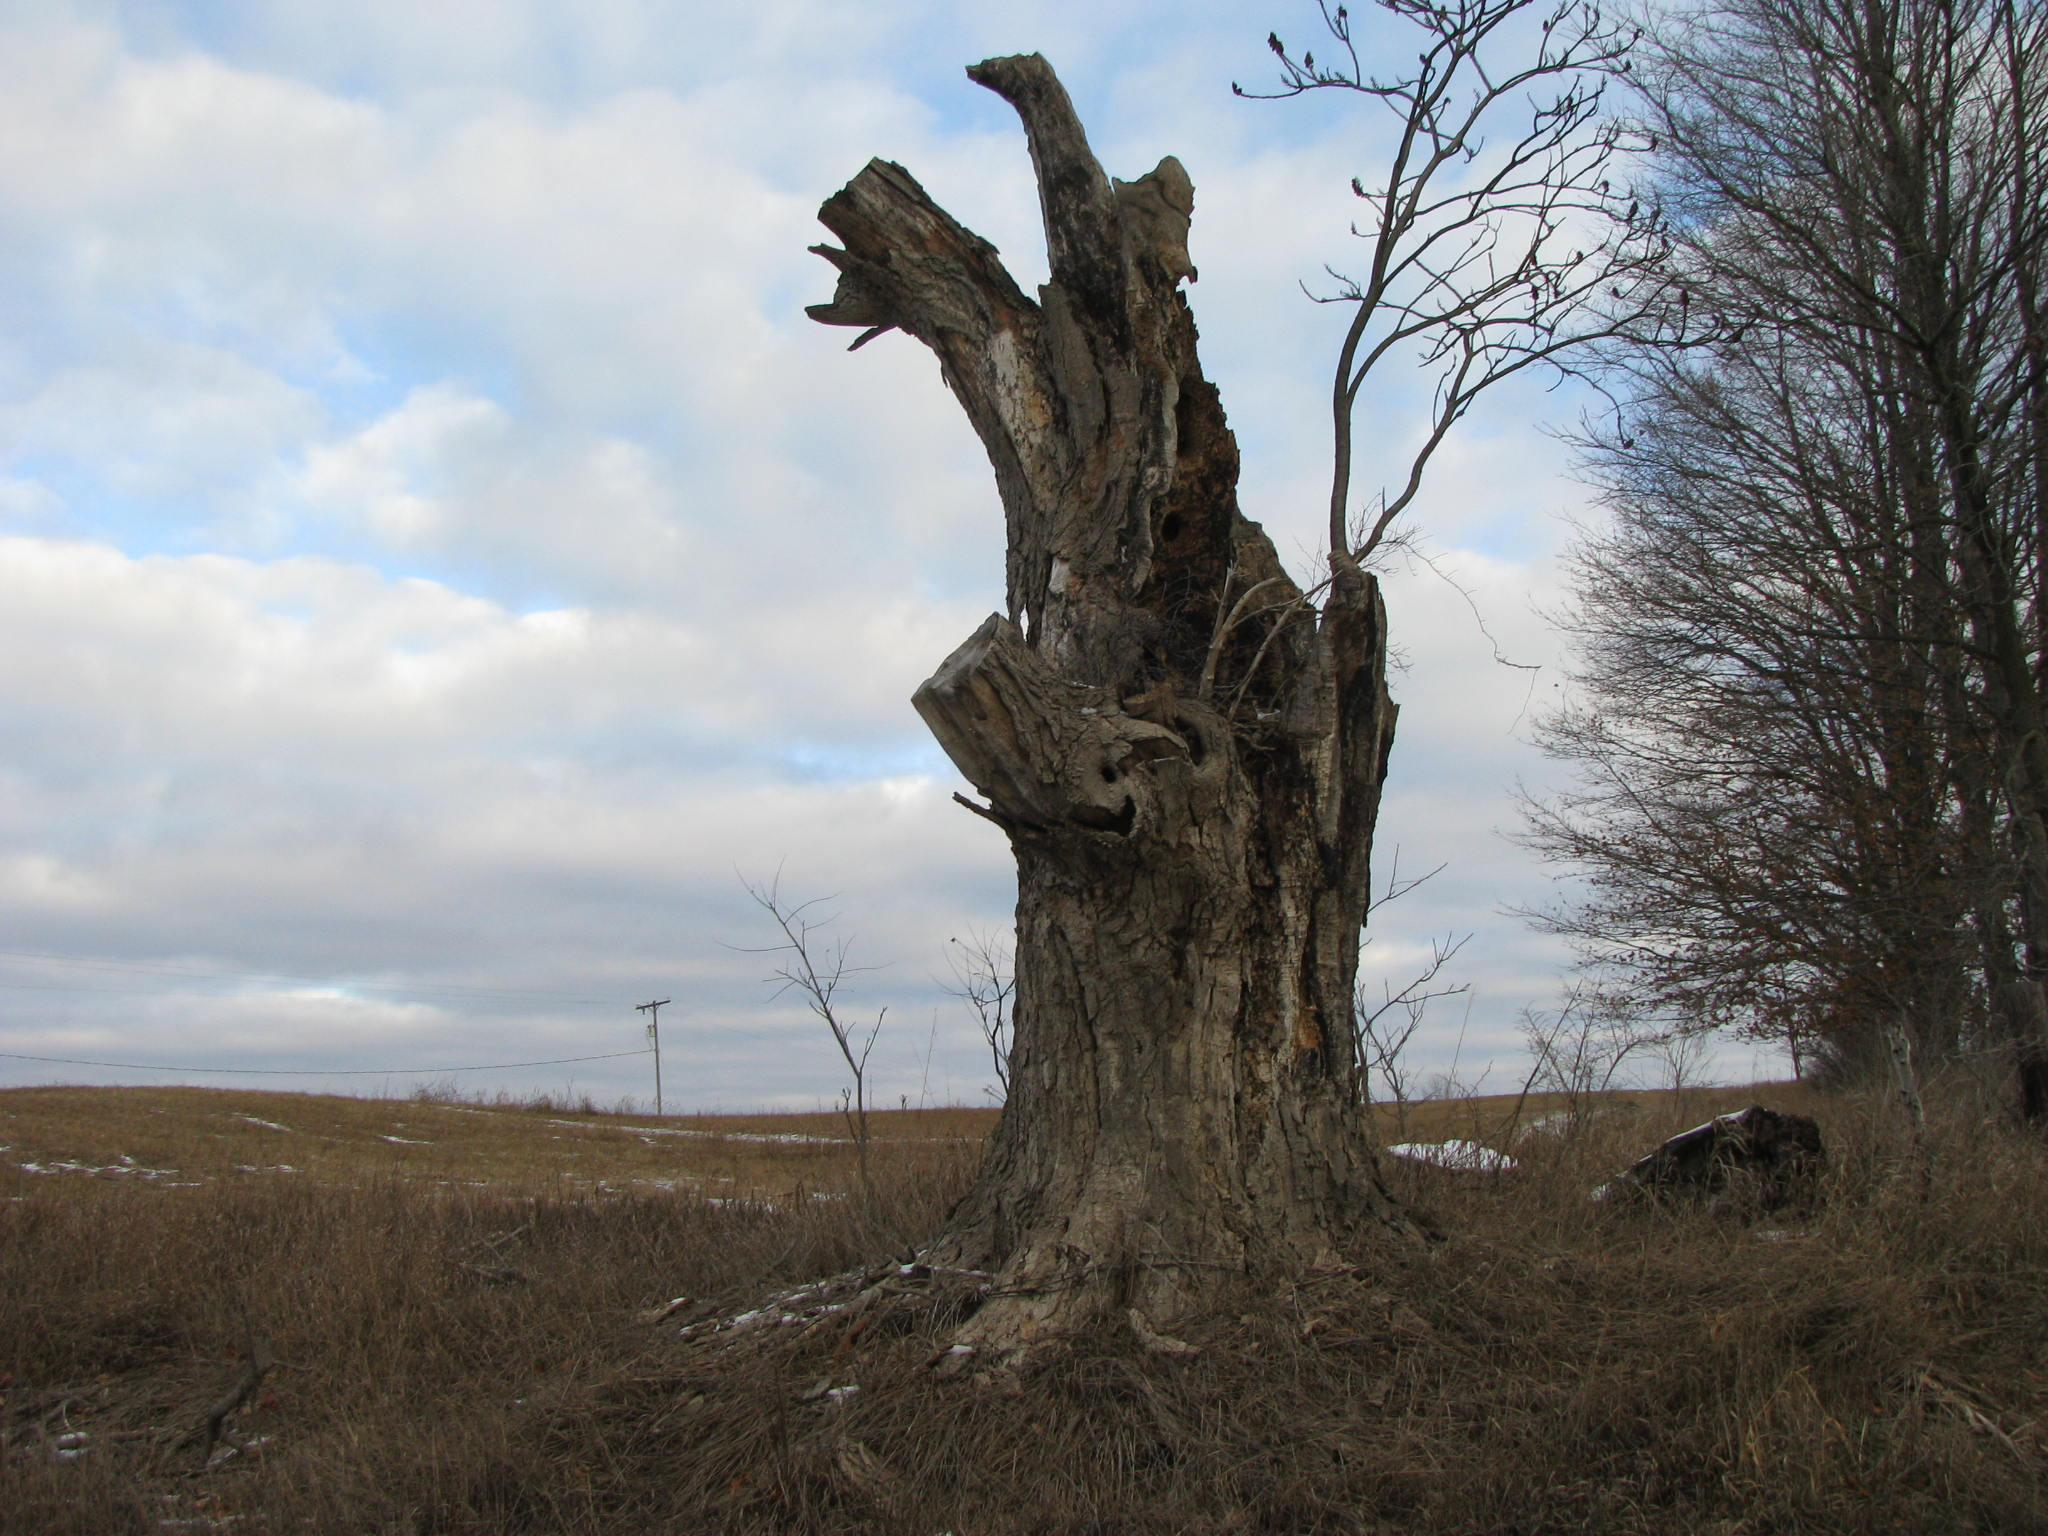 The remains of a once grand tree stands against the backdrop of a morning sky in Michigan.